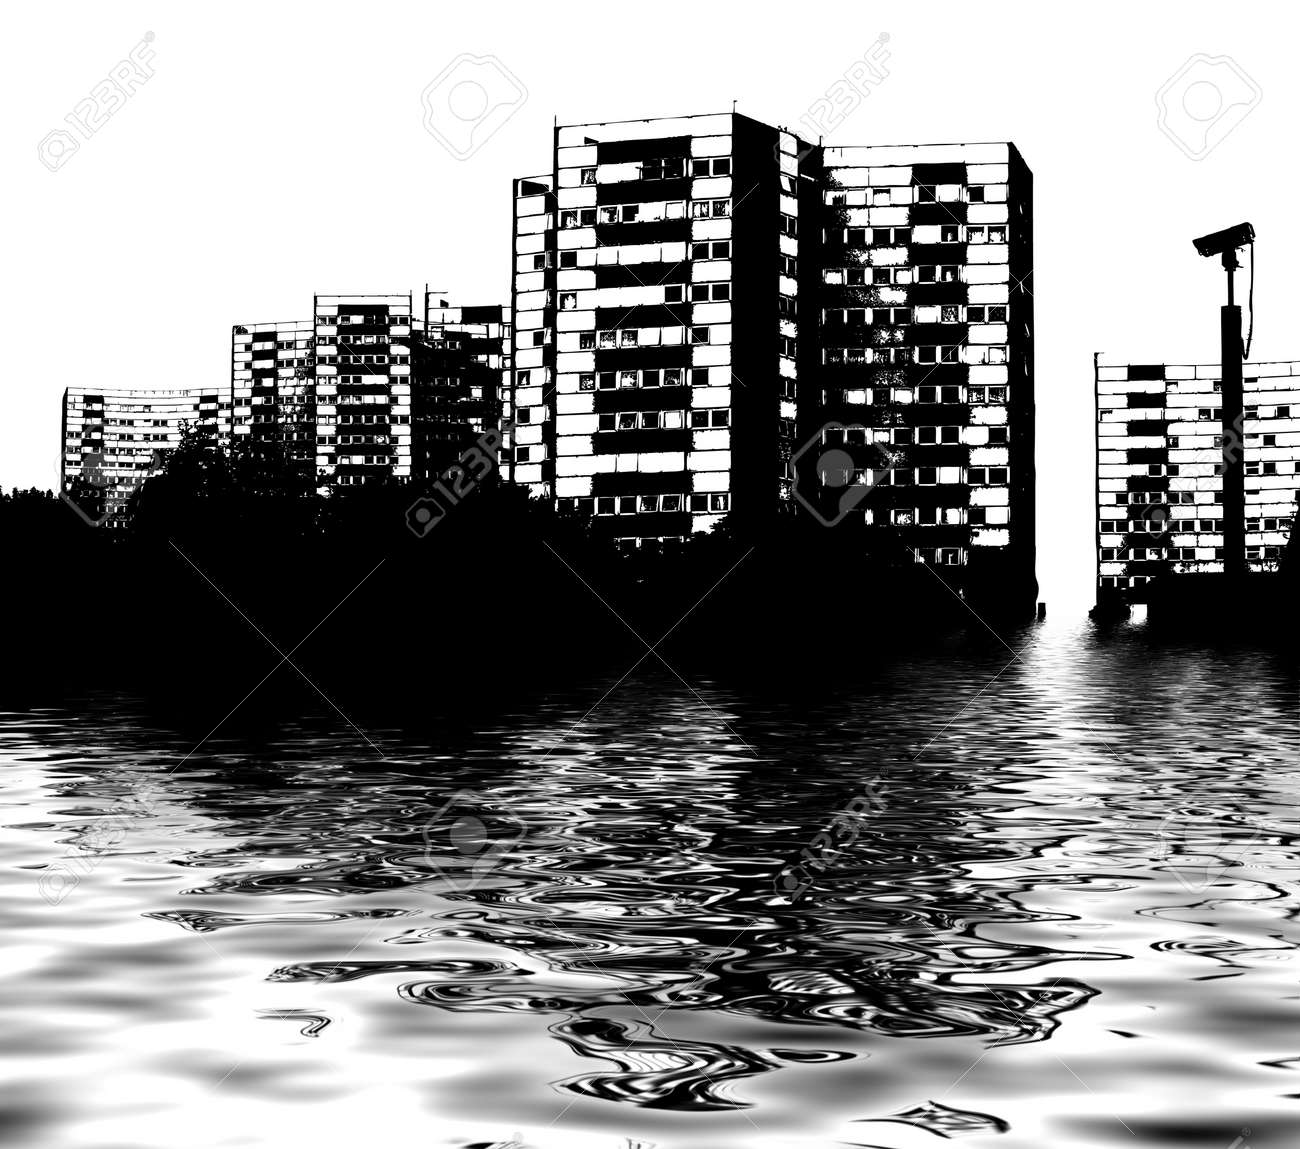 Illustrated City flood under water reflecting global warming Stock Photo - 3348484